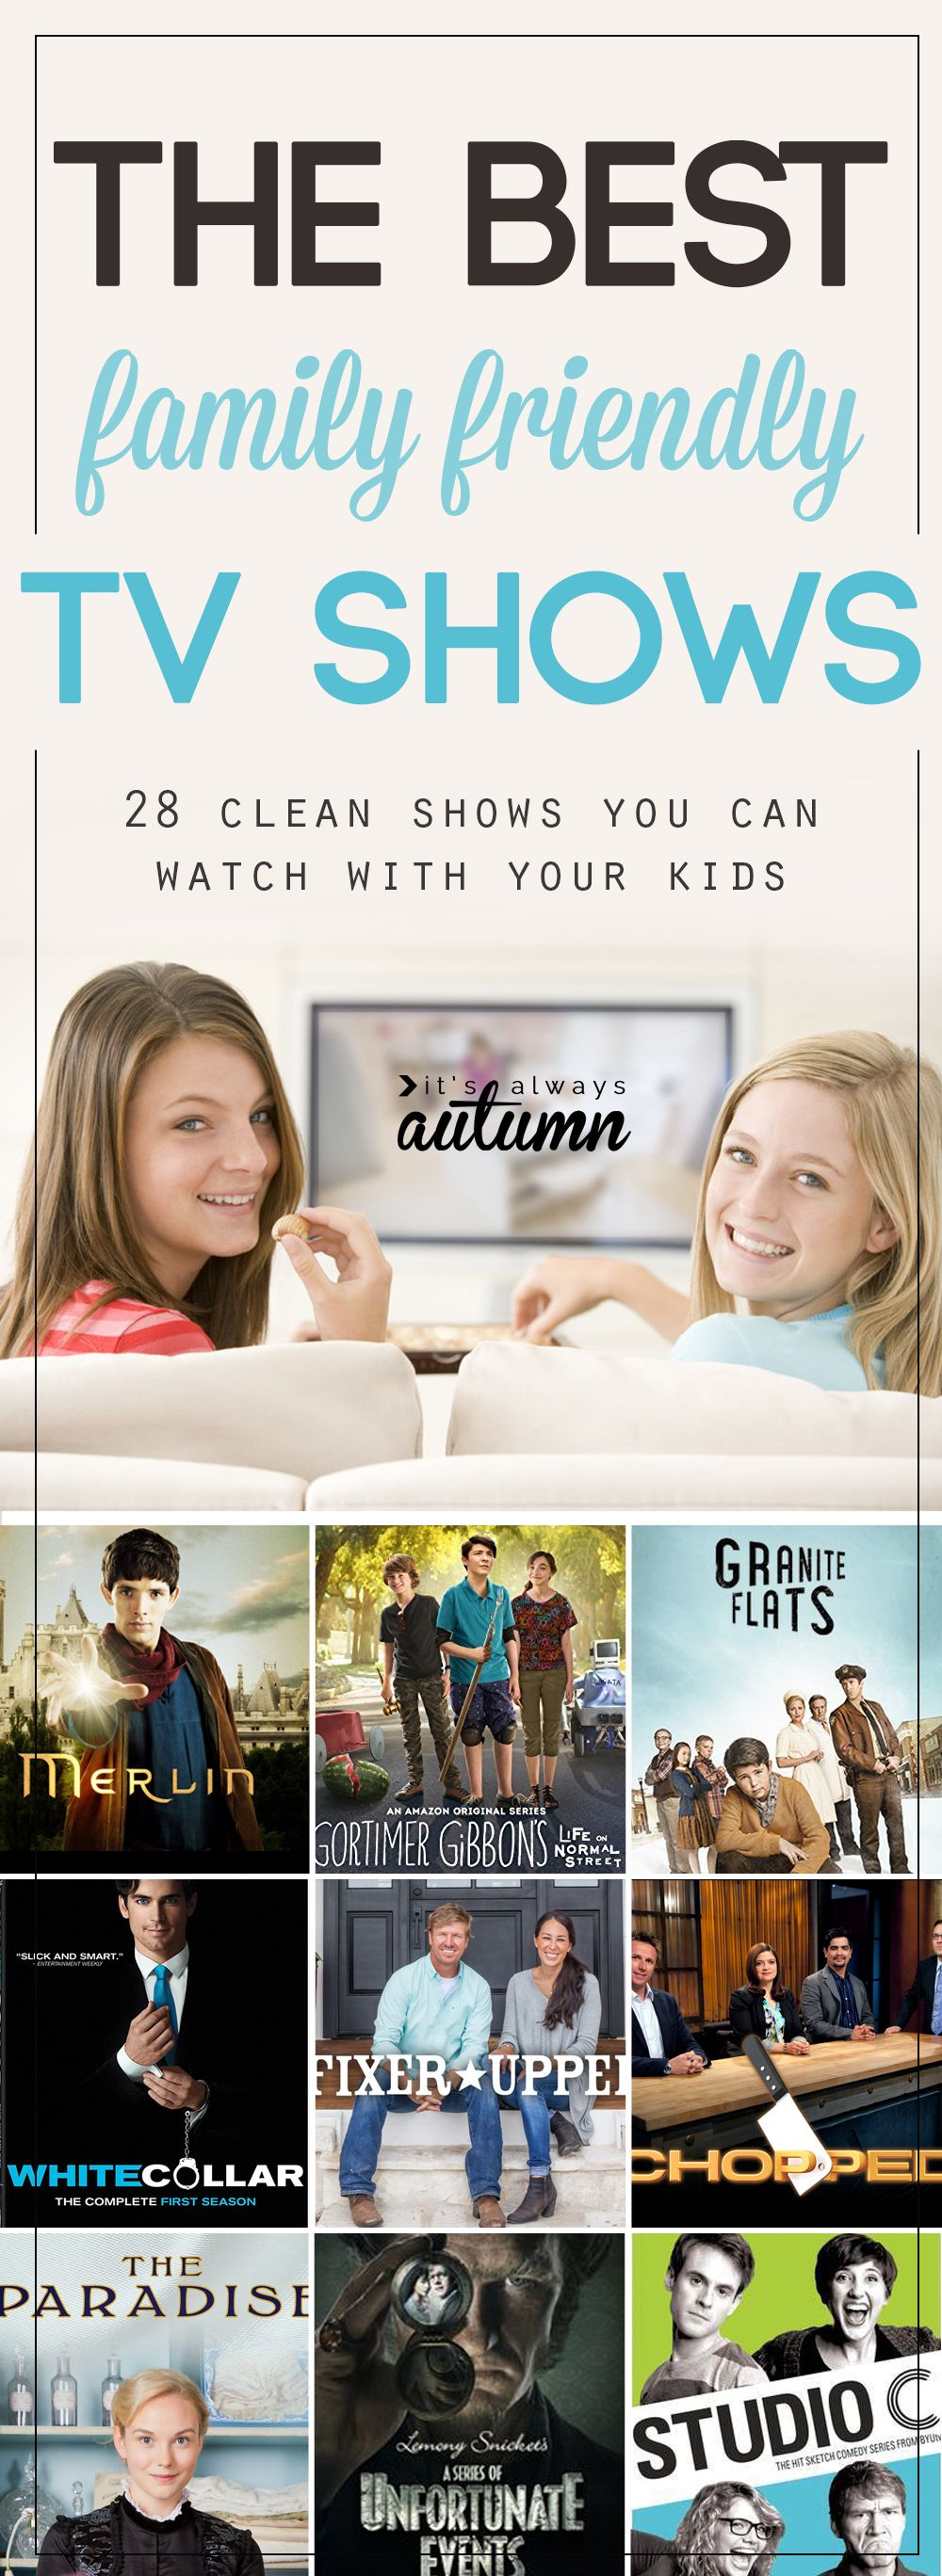 The best family friendly tv shows to watch with your kids | Crafts